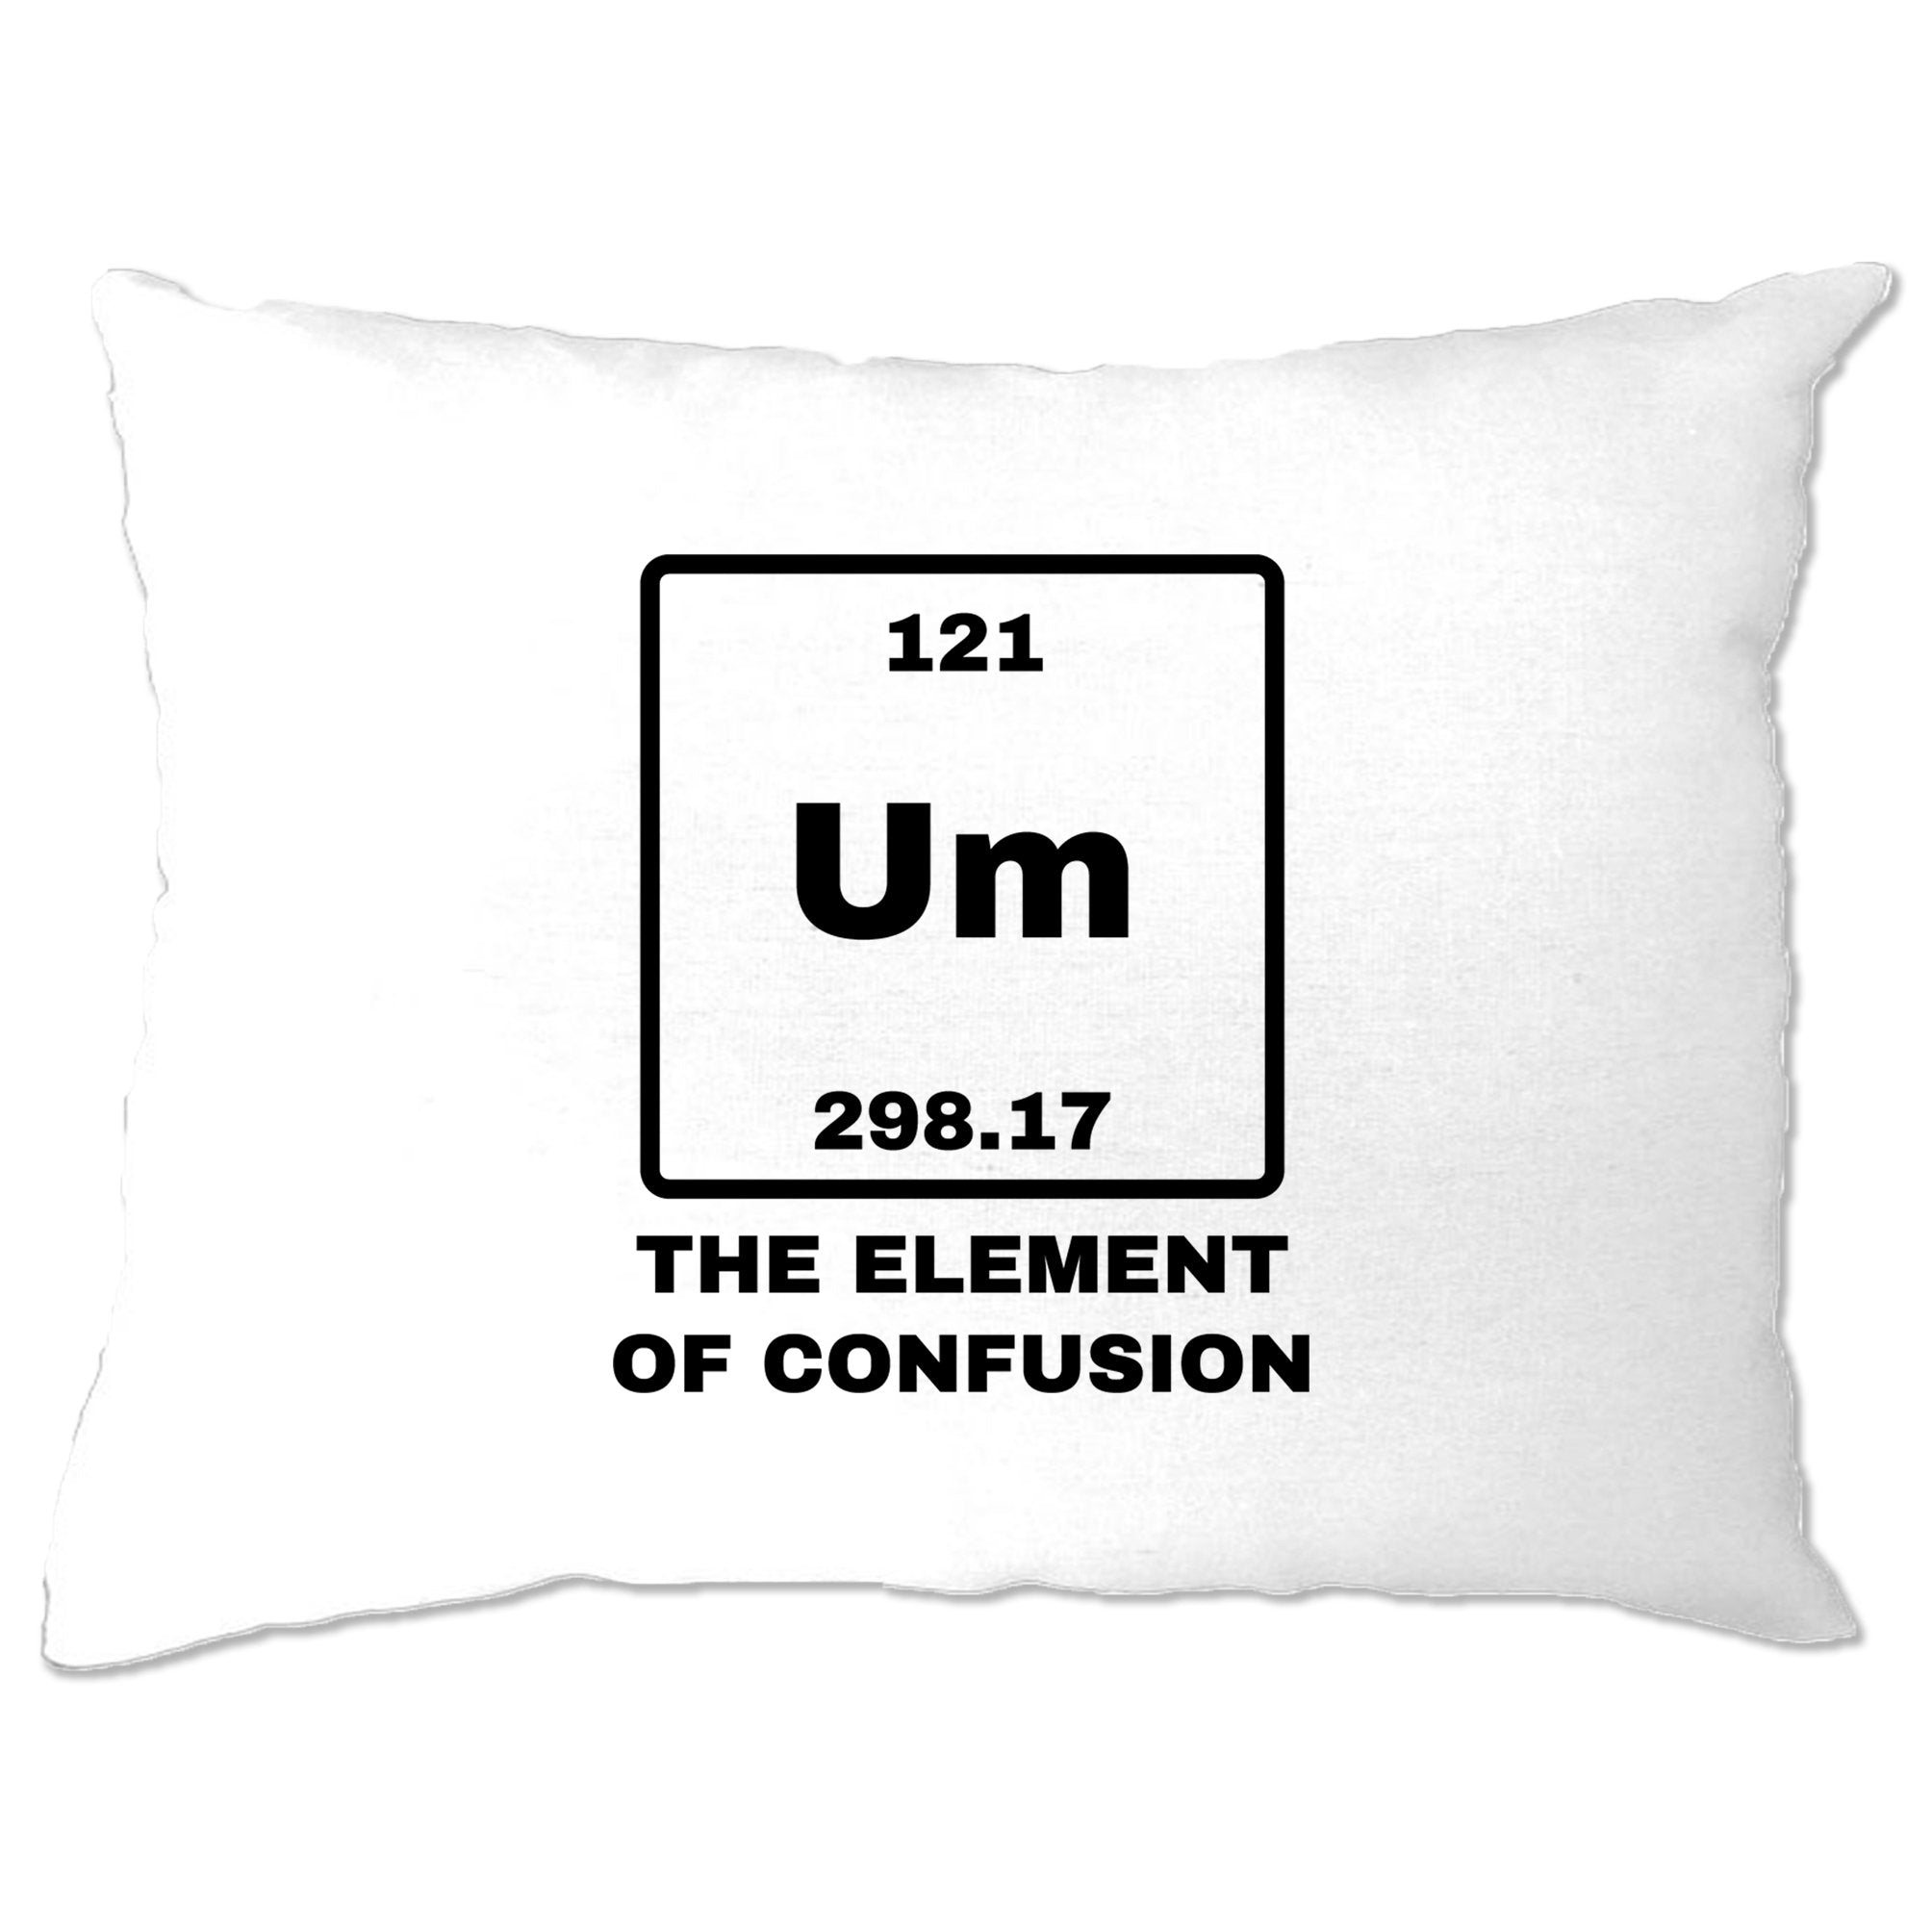 Novelty Science Pillow Case Um The Element Of Confusion